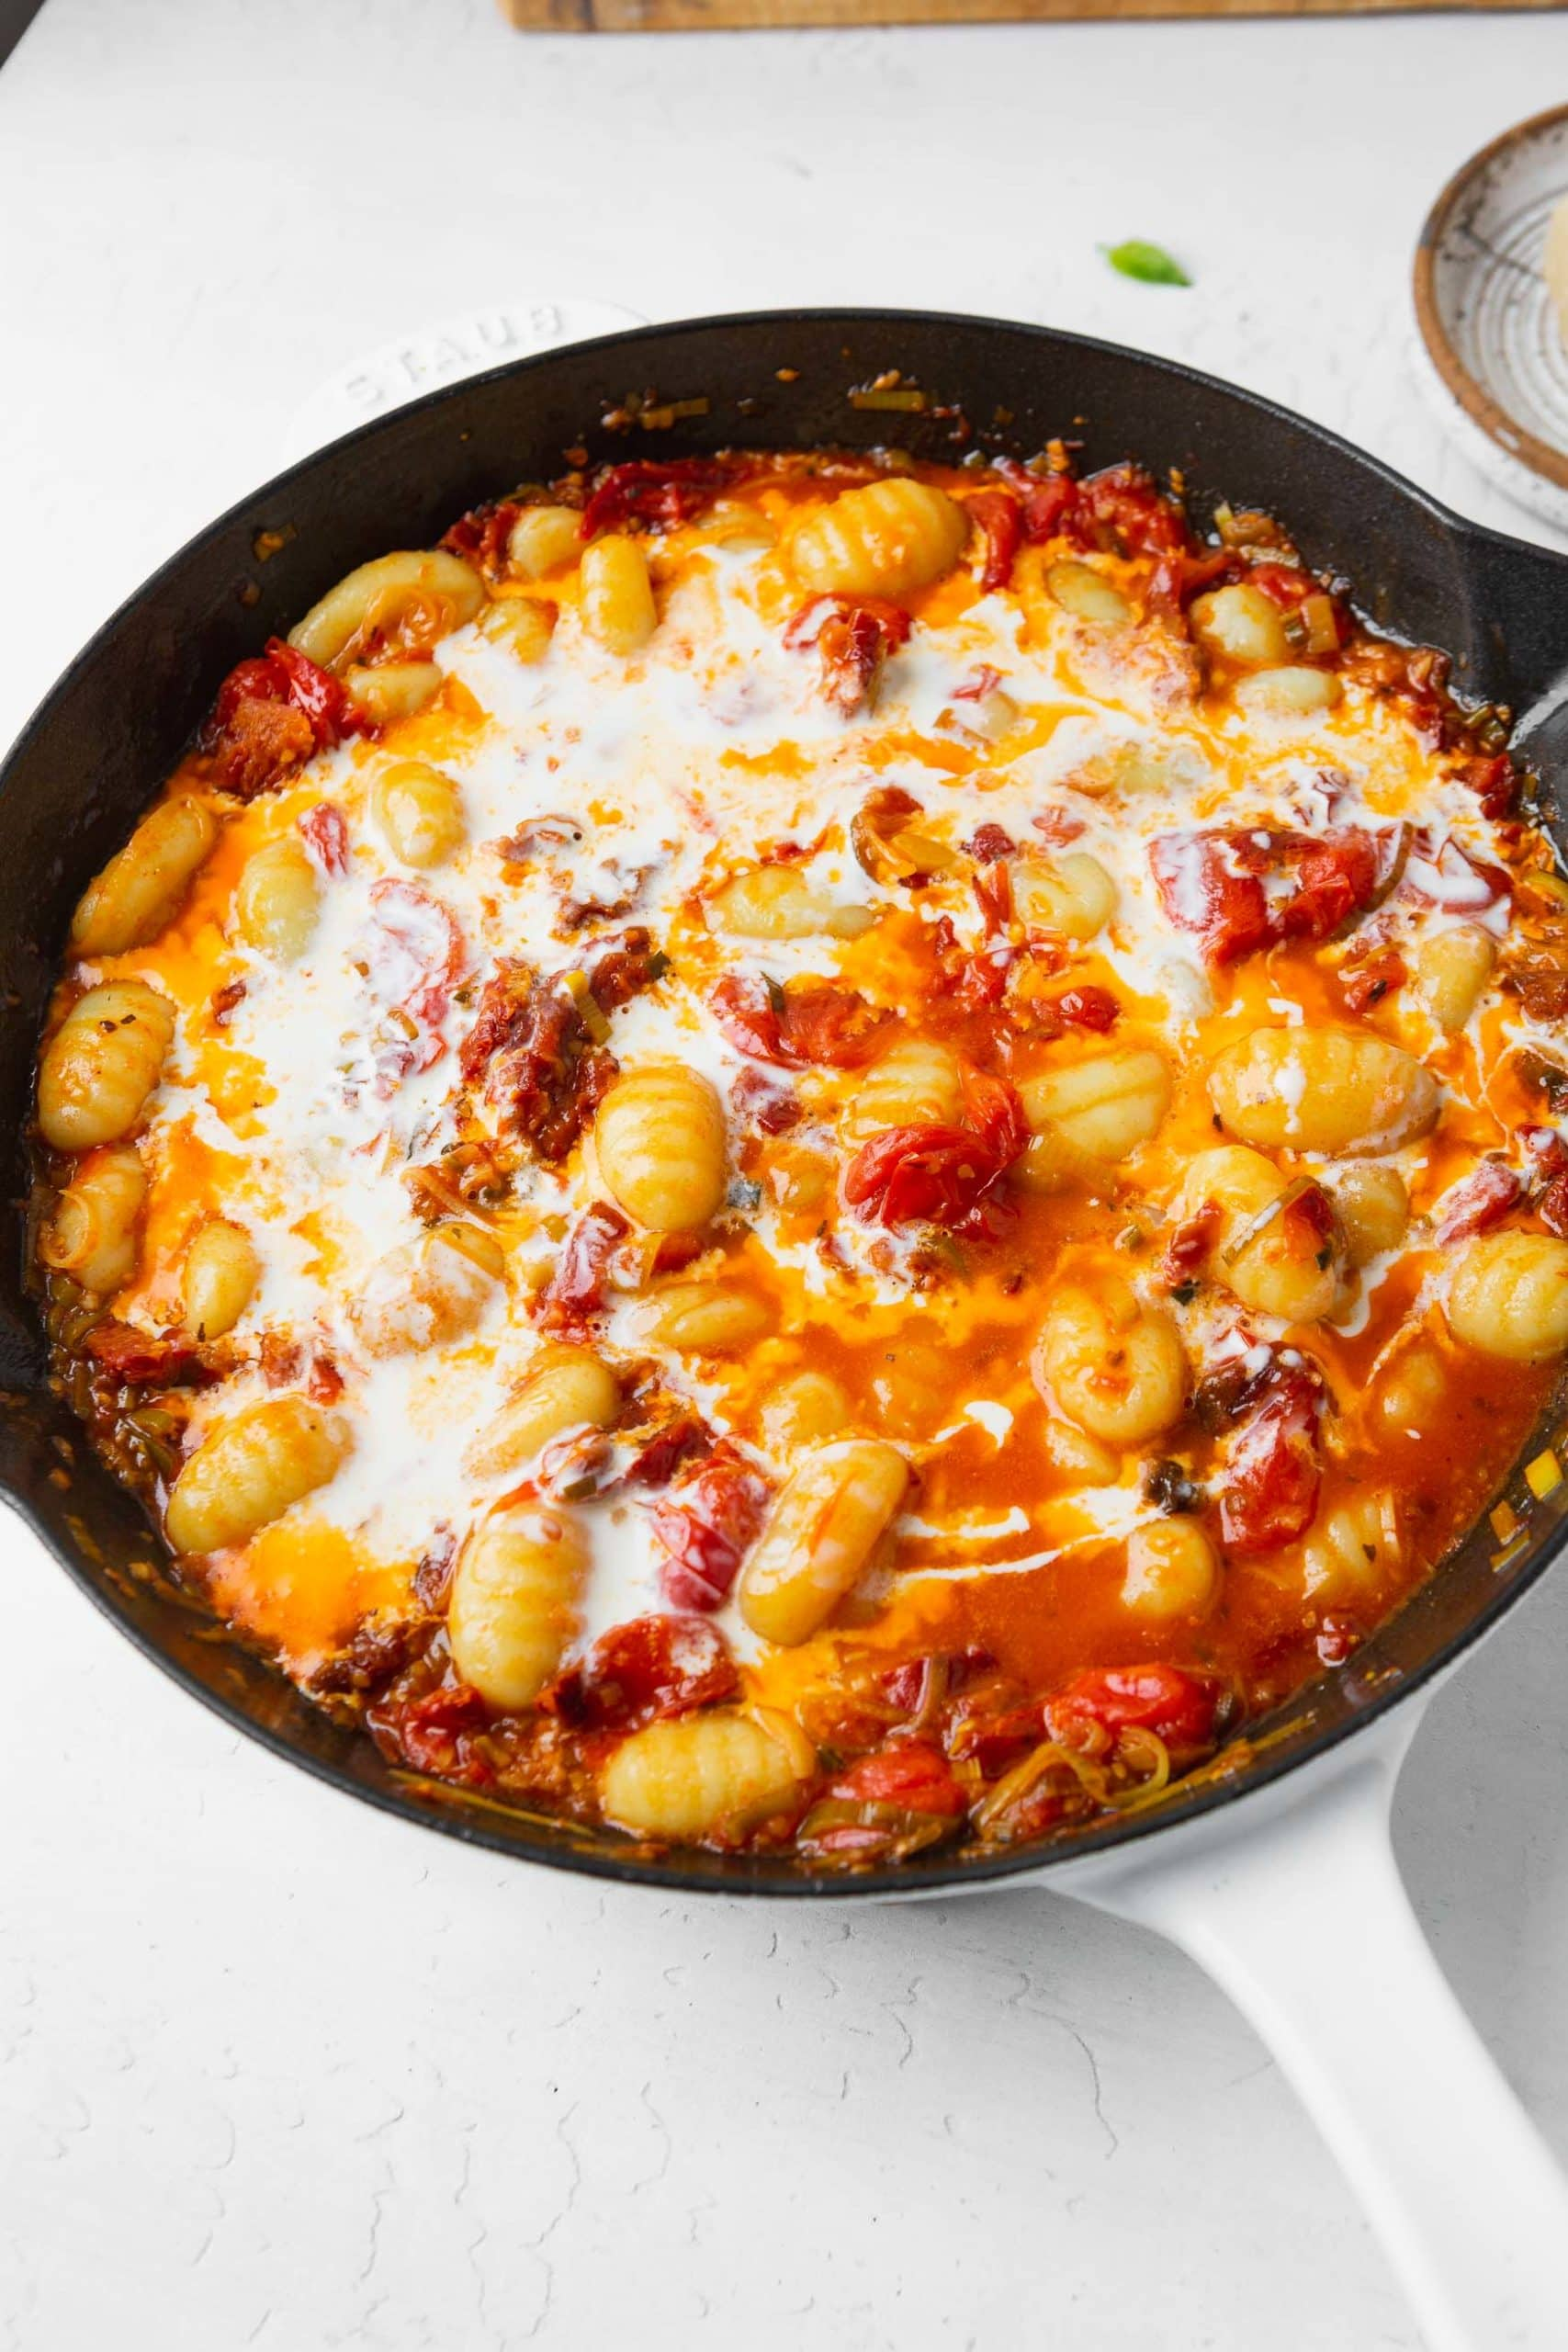 A photo of creamy sun dried tomato gnocci in a cast iron skillet with the gnocchi and cream added.